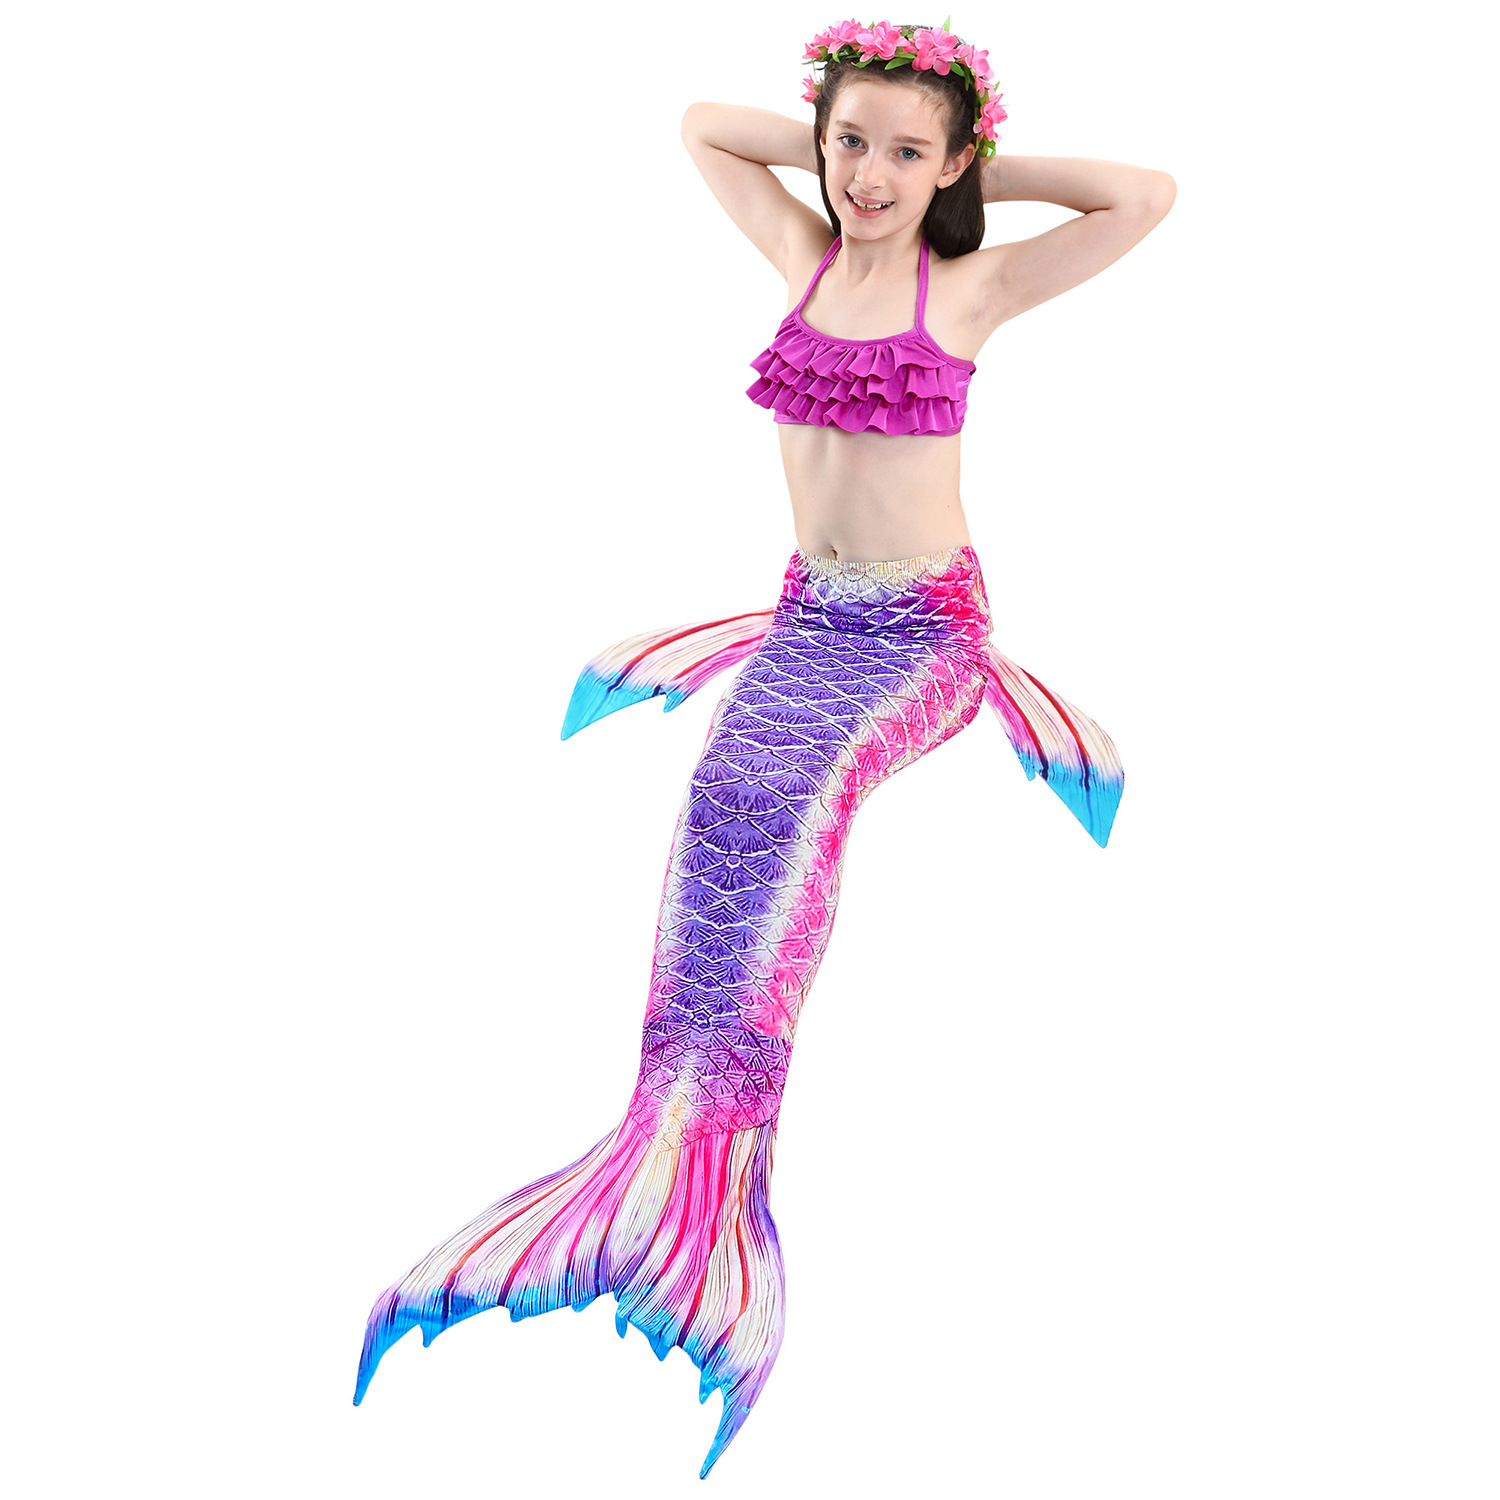 9282523442 898390851 - 4PCS/Set HOT Kids Girls Mermaid Tails with Fin Swimsuit Bikini Bathing Suit Dress for Girls With Flipper Monofin For Swim